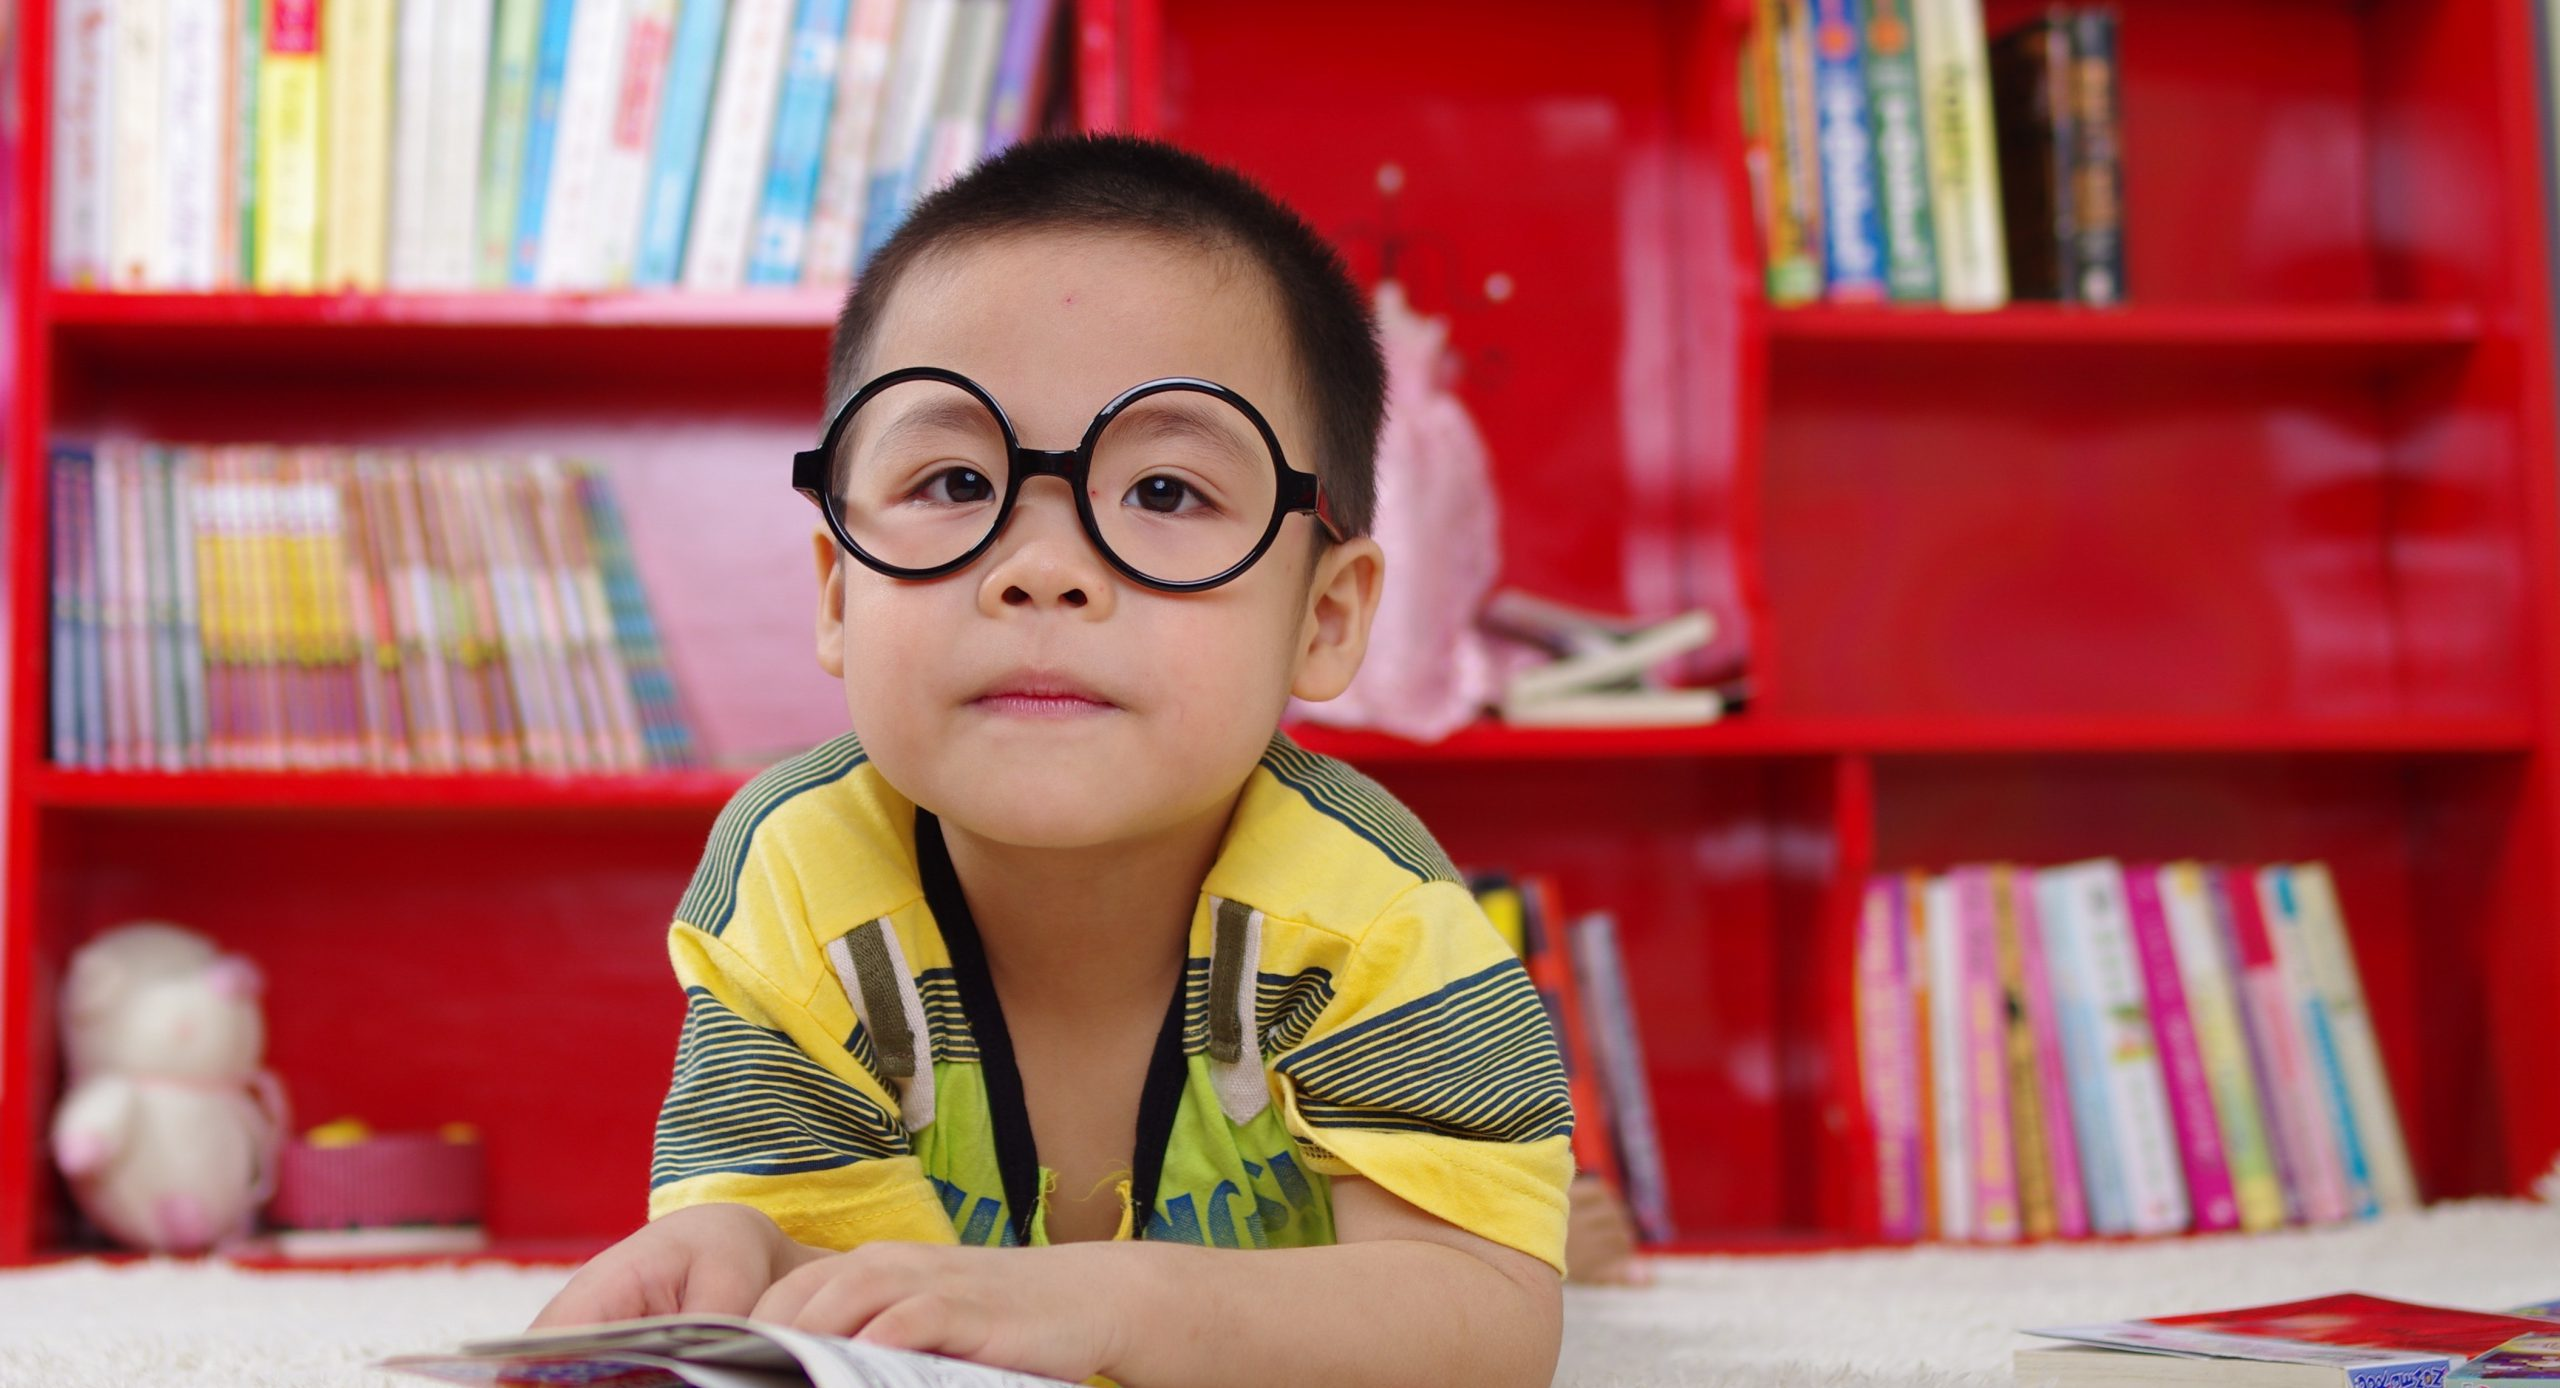 Young Boy with glasses reading